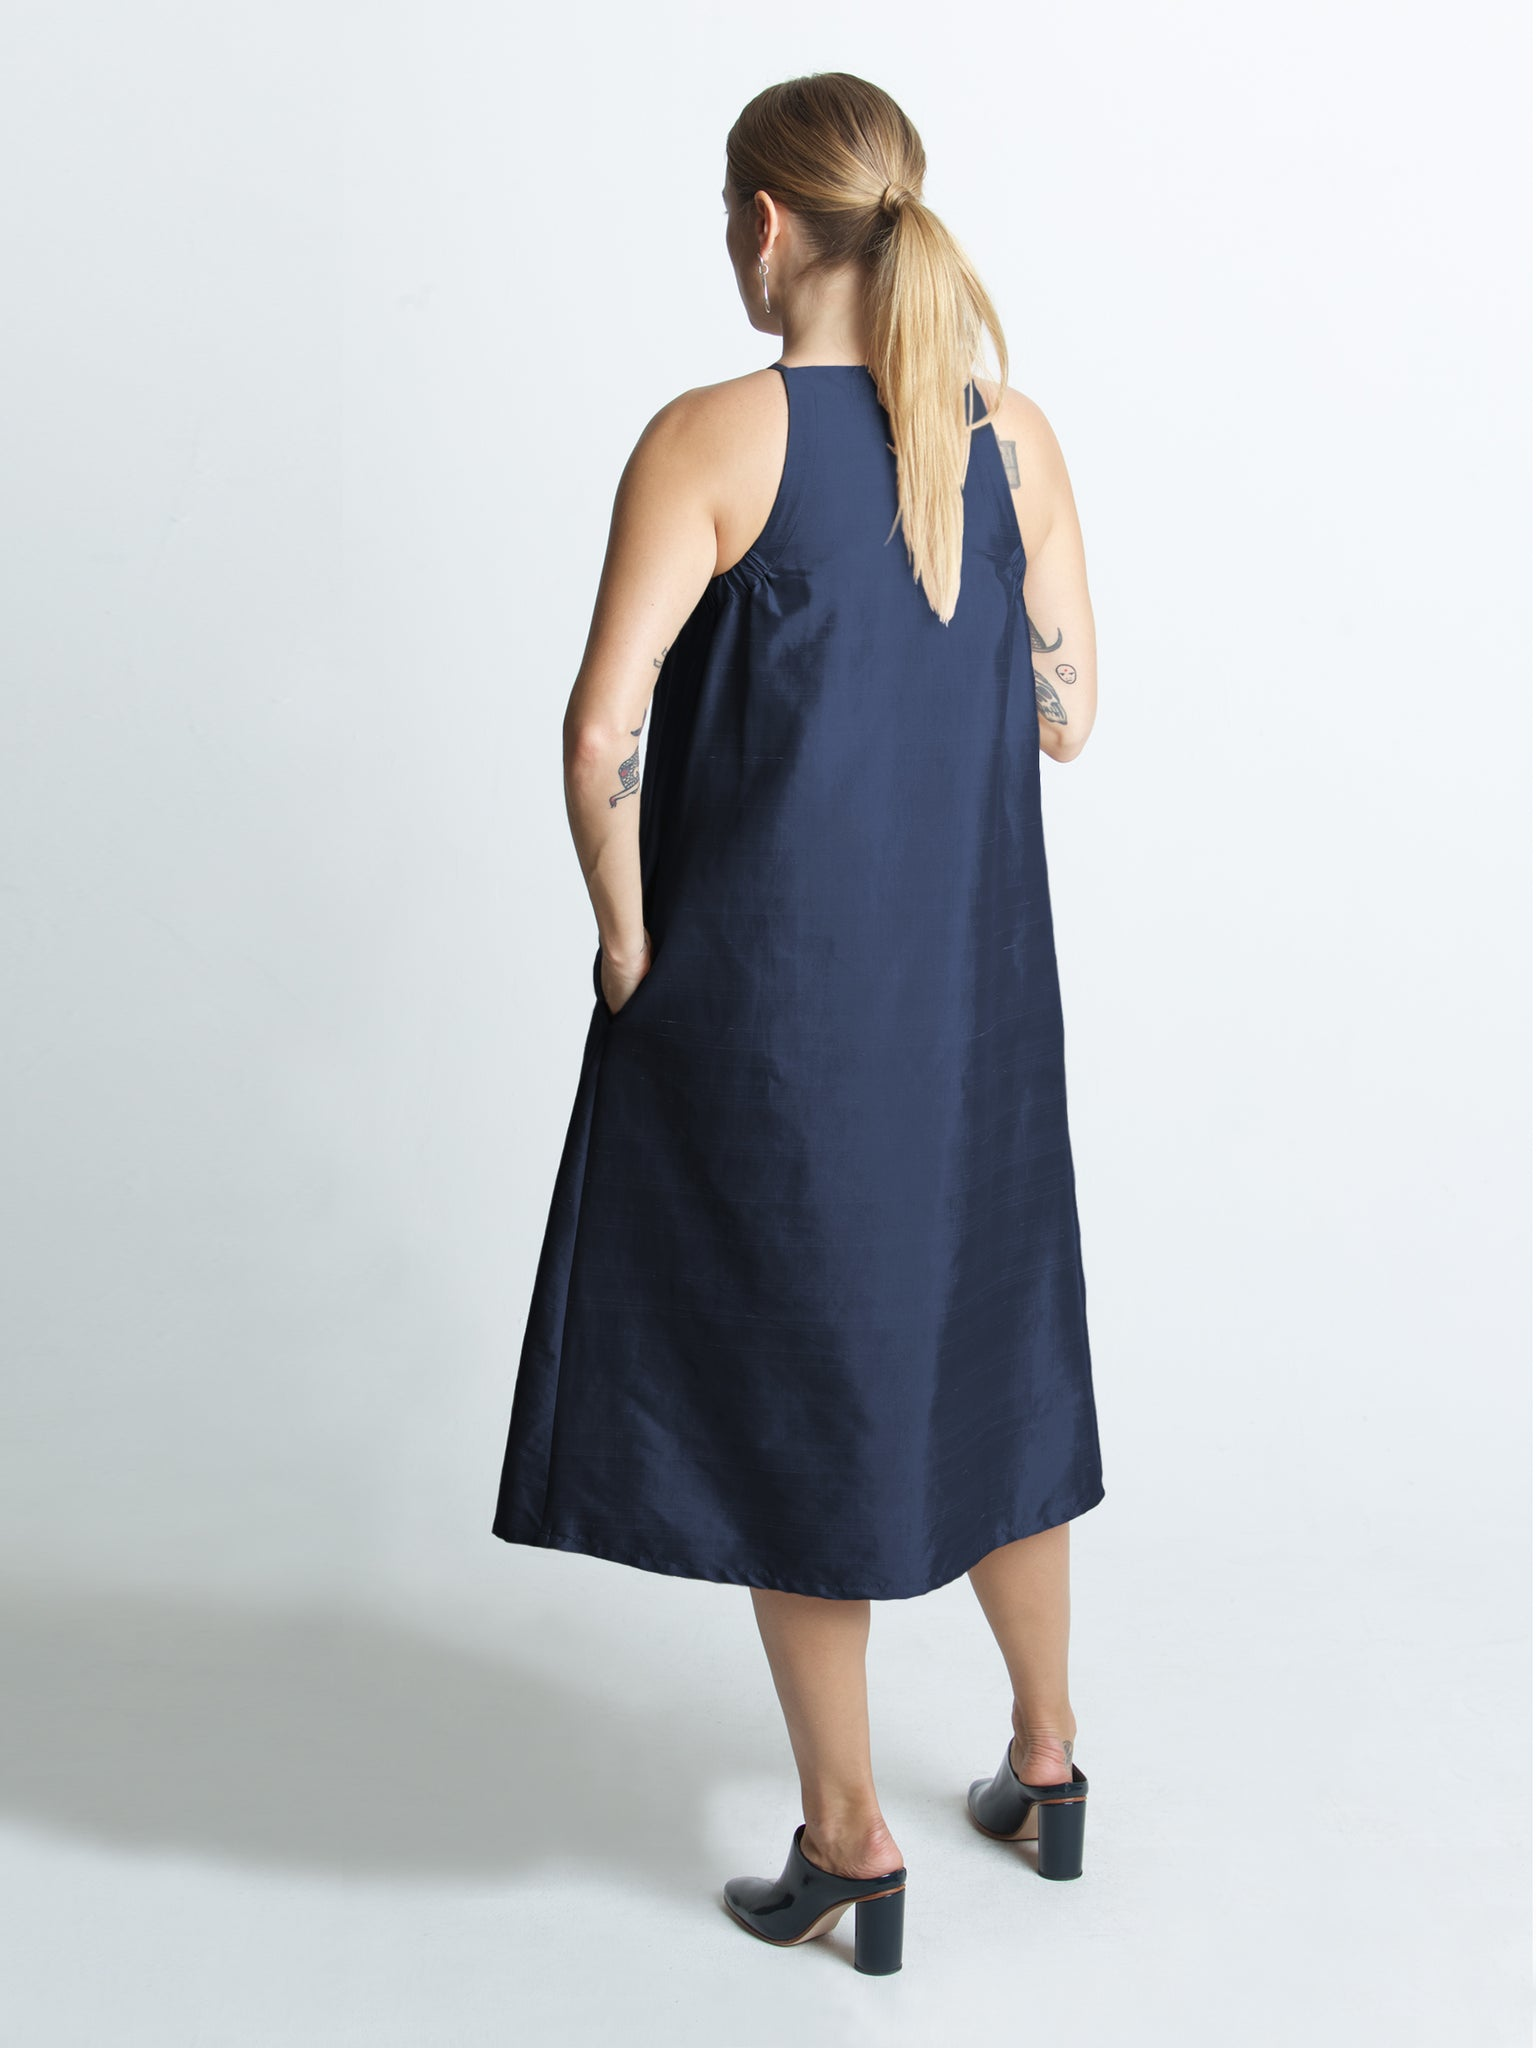 Beth - Yard Dress / Navy Dupioni